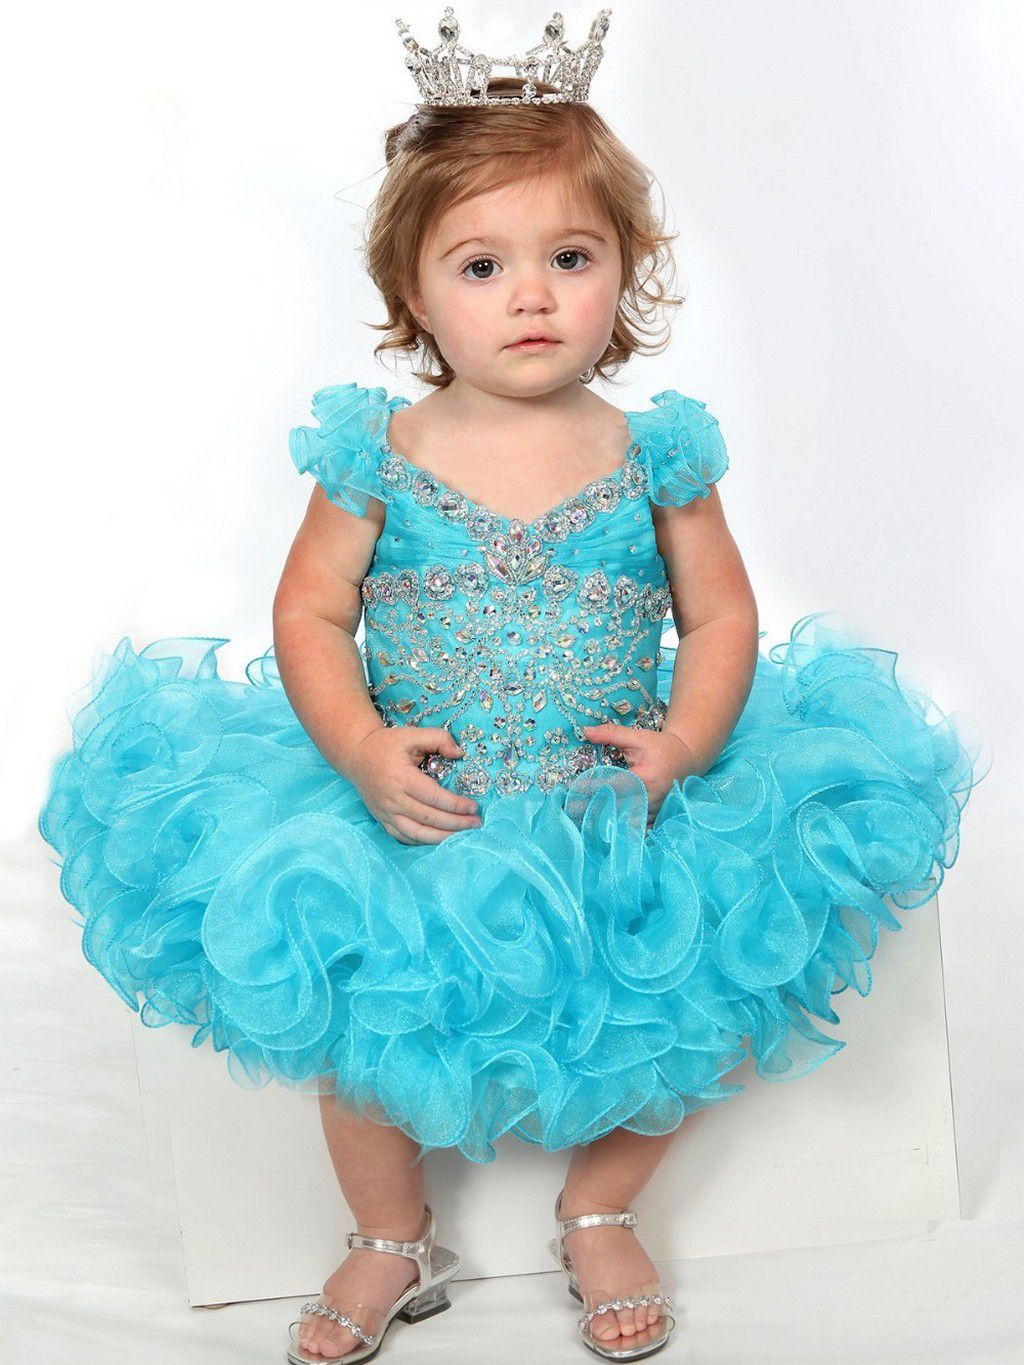 birthday dress for 1 year old baby girl - Dresses Ask